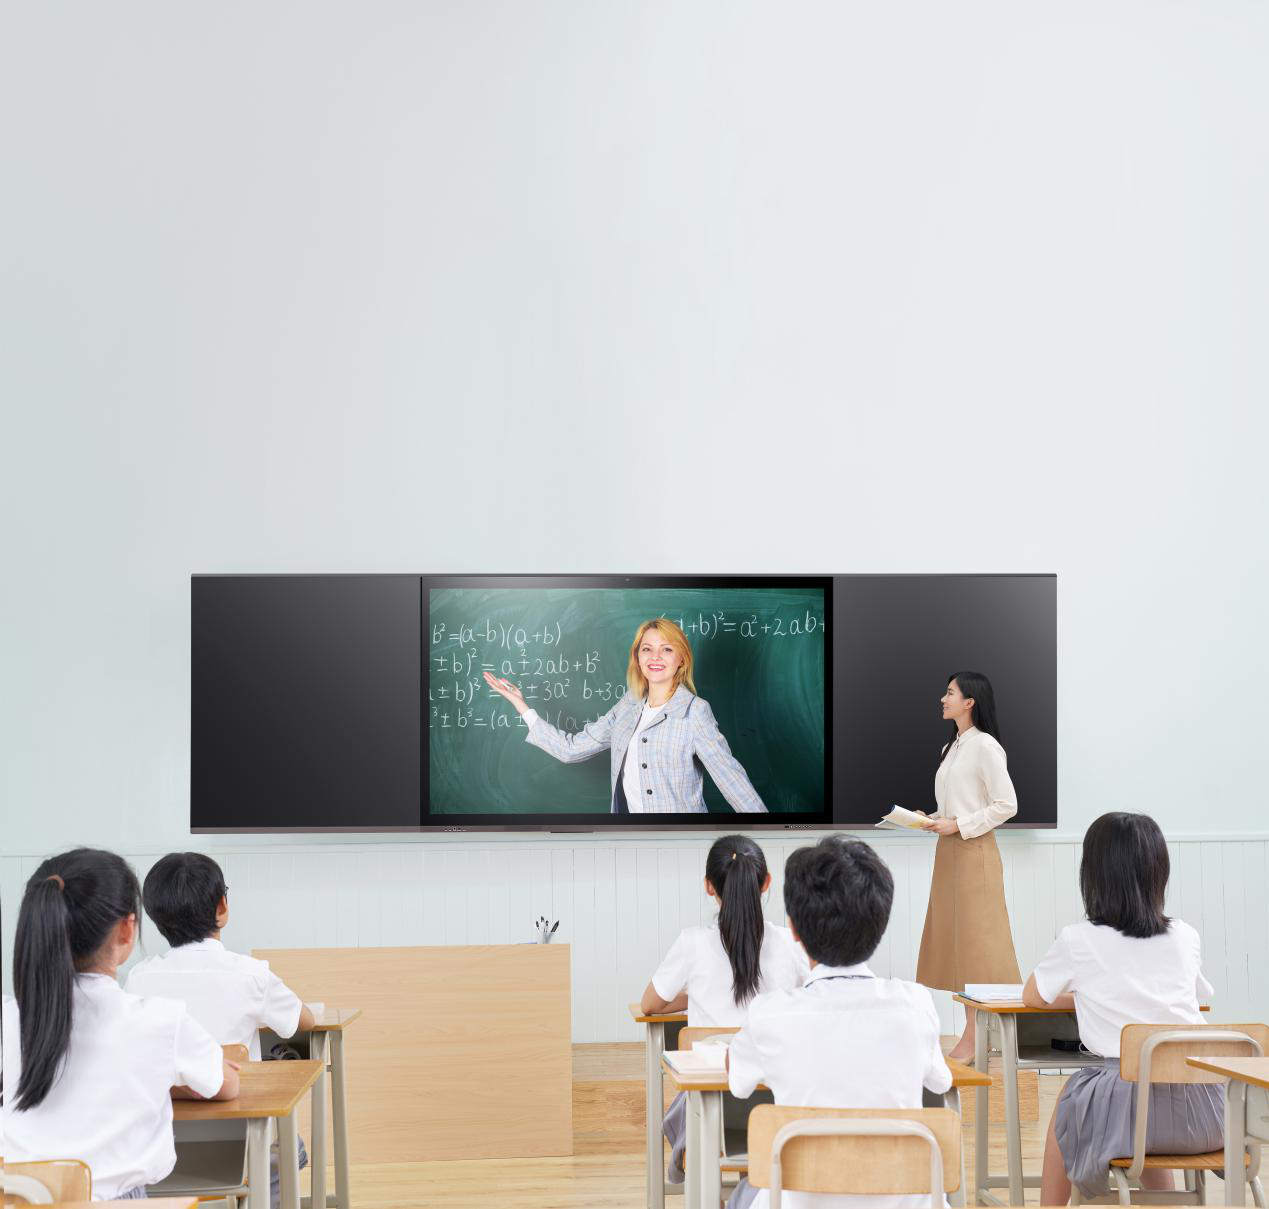 Why Are Classrooms of Other Schools So Smart?